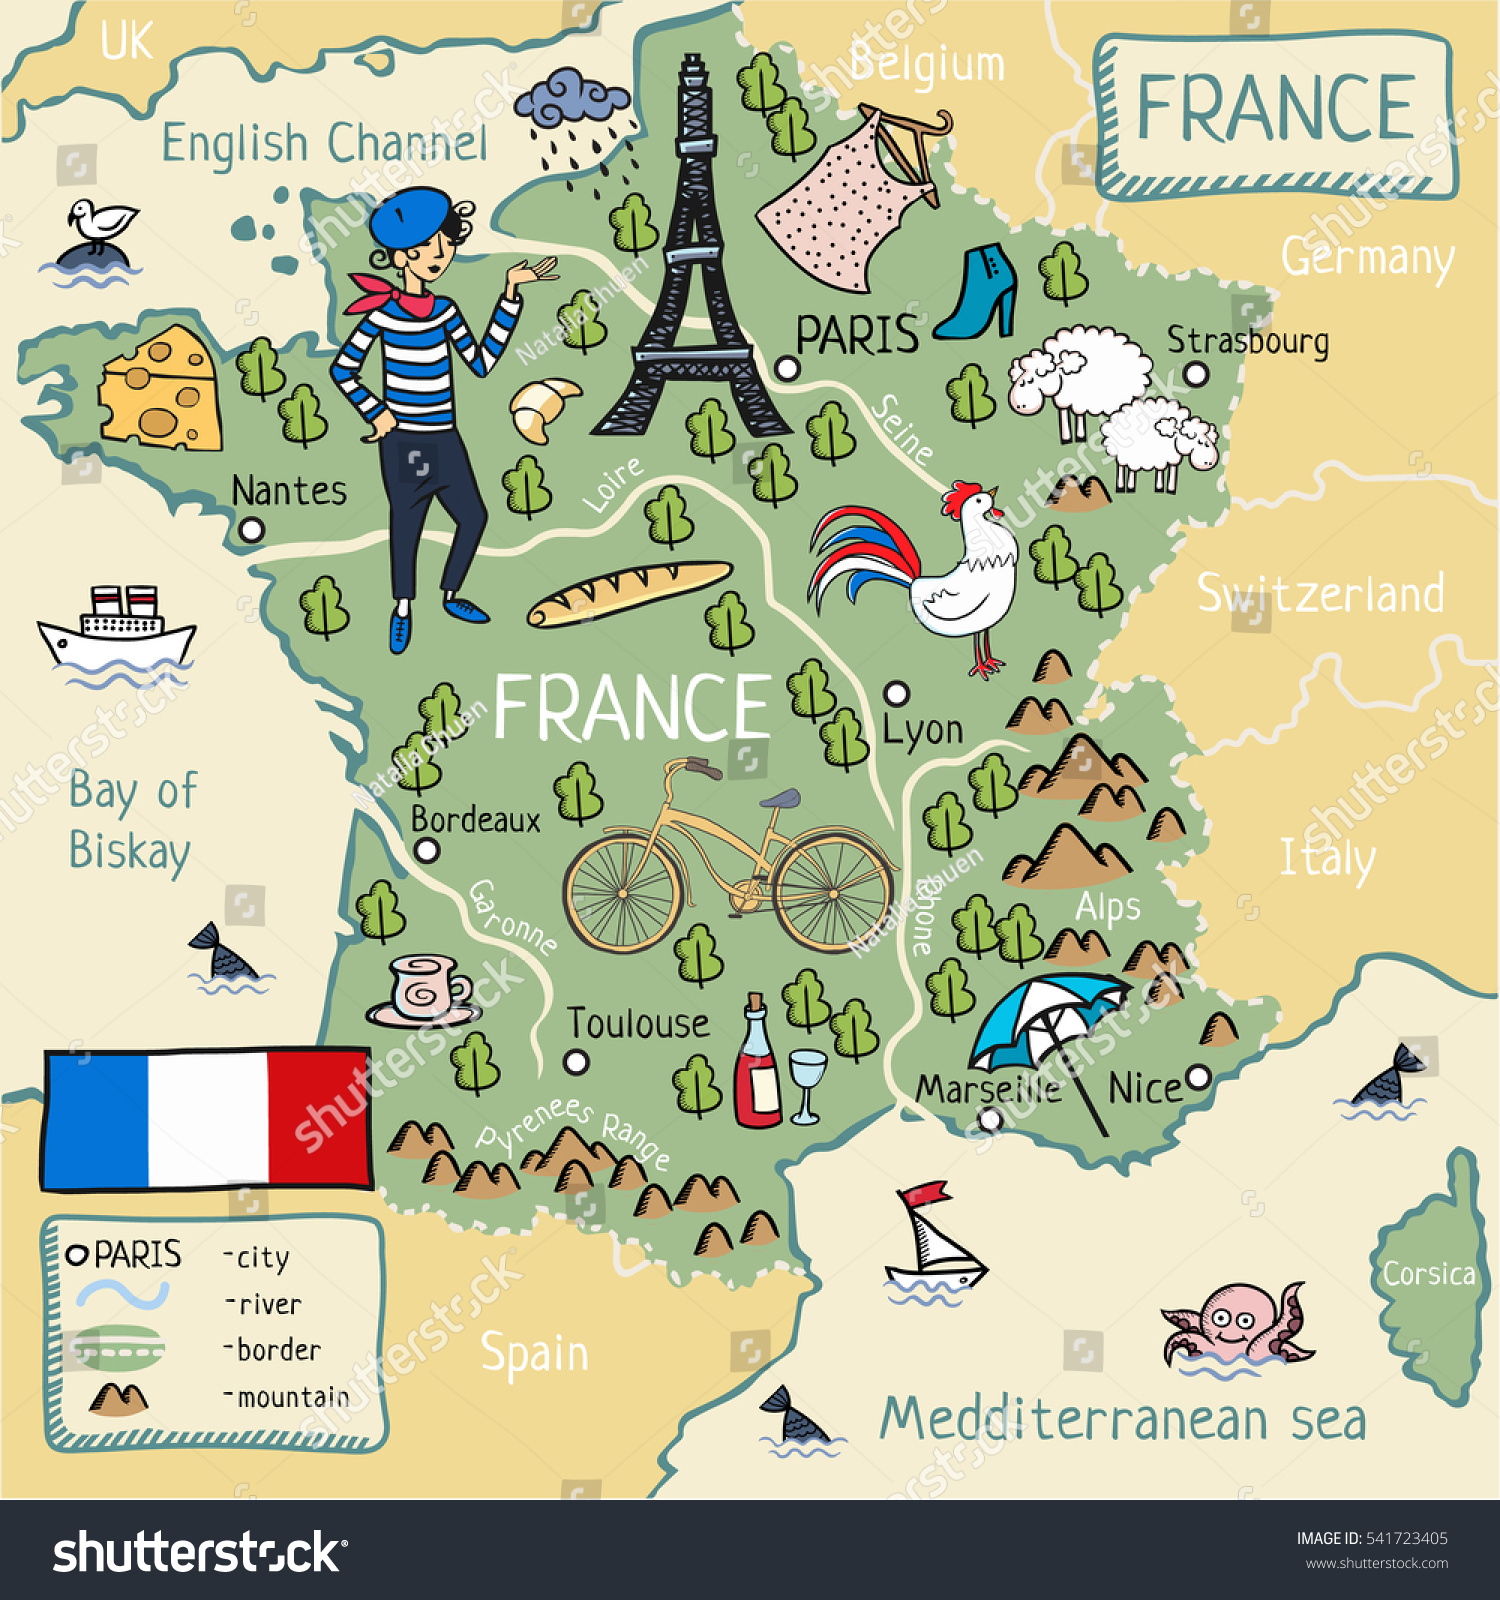 Cartoon Map France Stock Illustration Shutterstock - Germany map cartoon